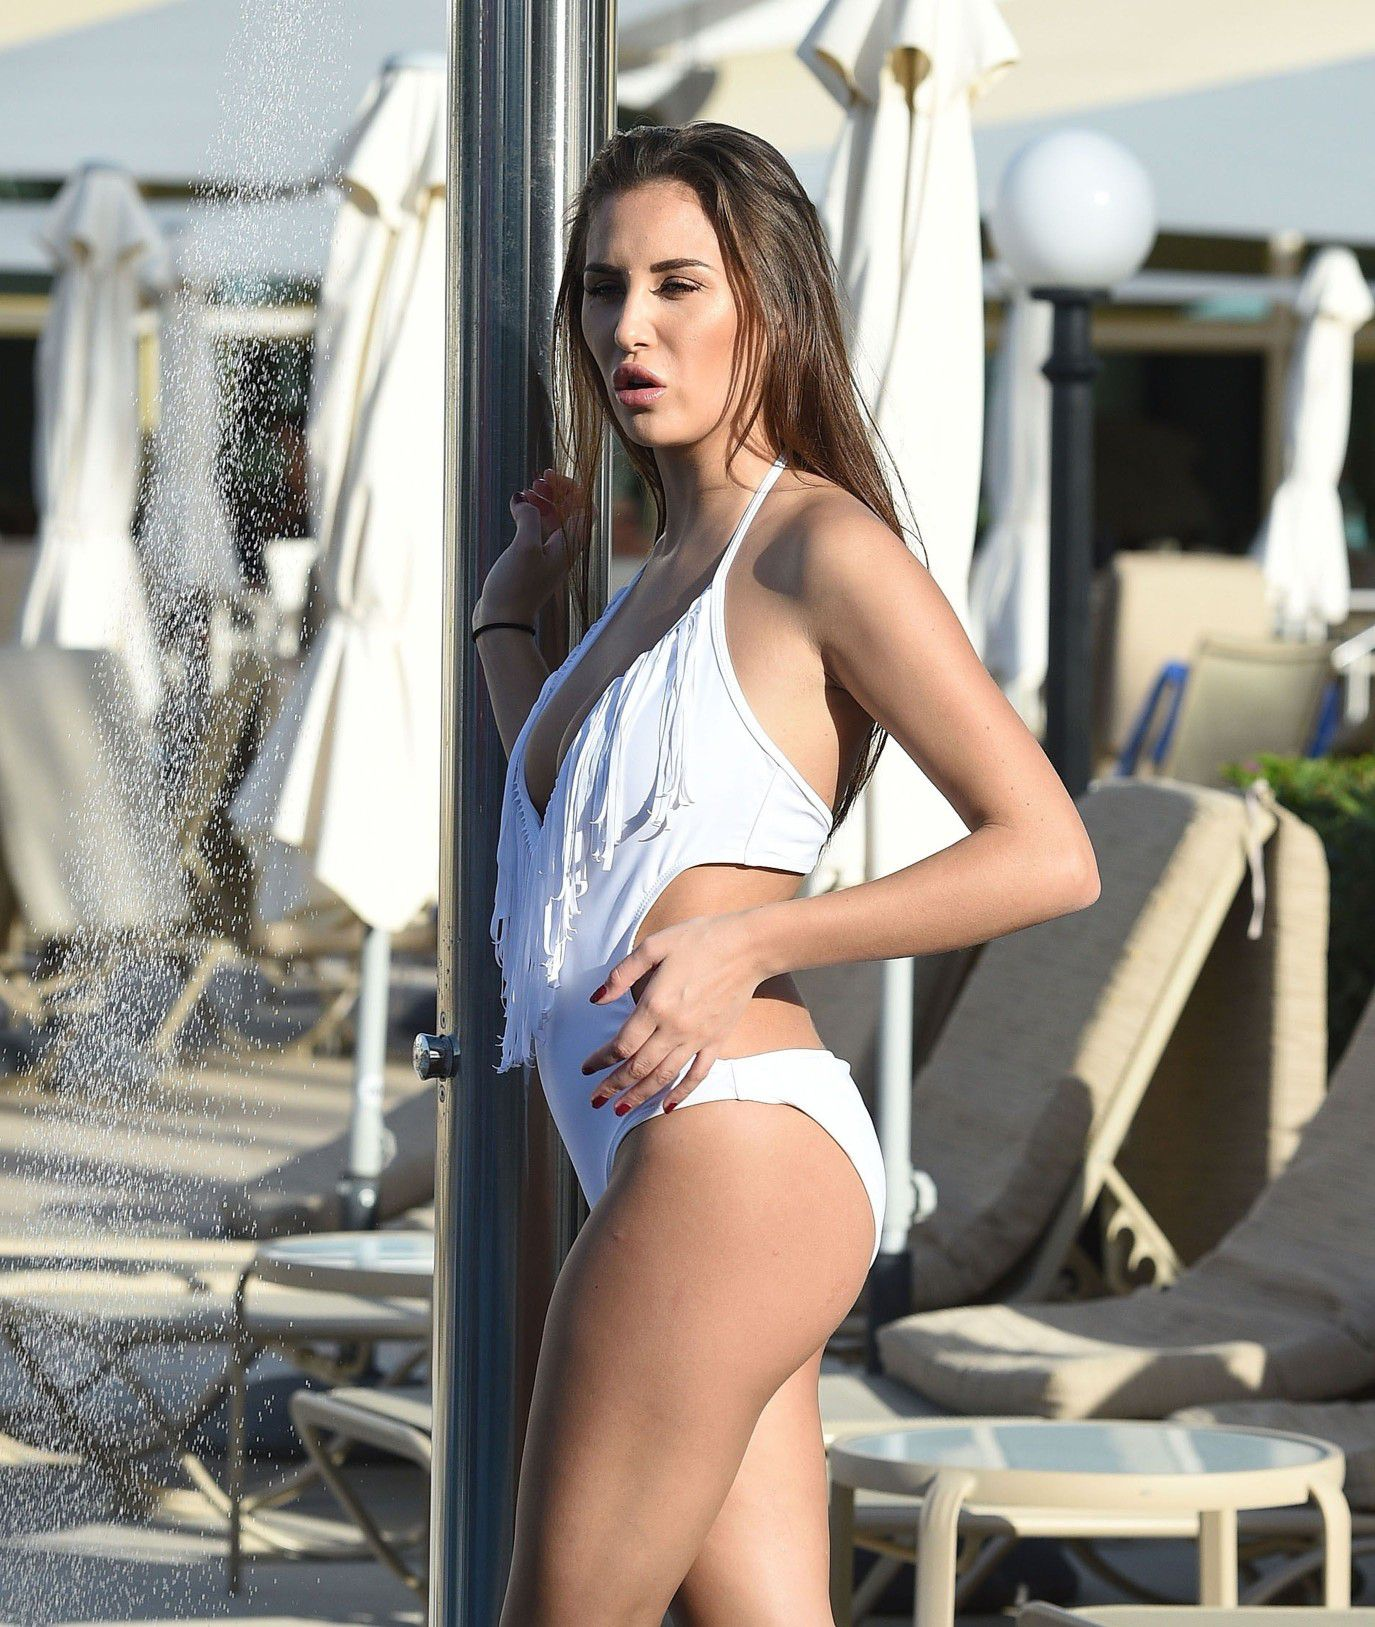 chloe-goodman-white-swimsuit-cameltoe-in-dubai-9458